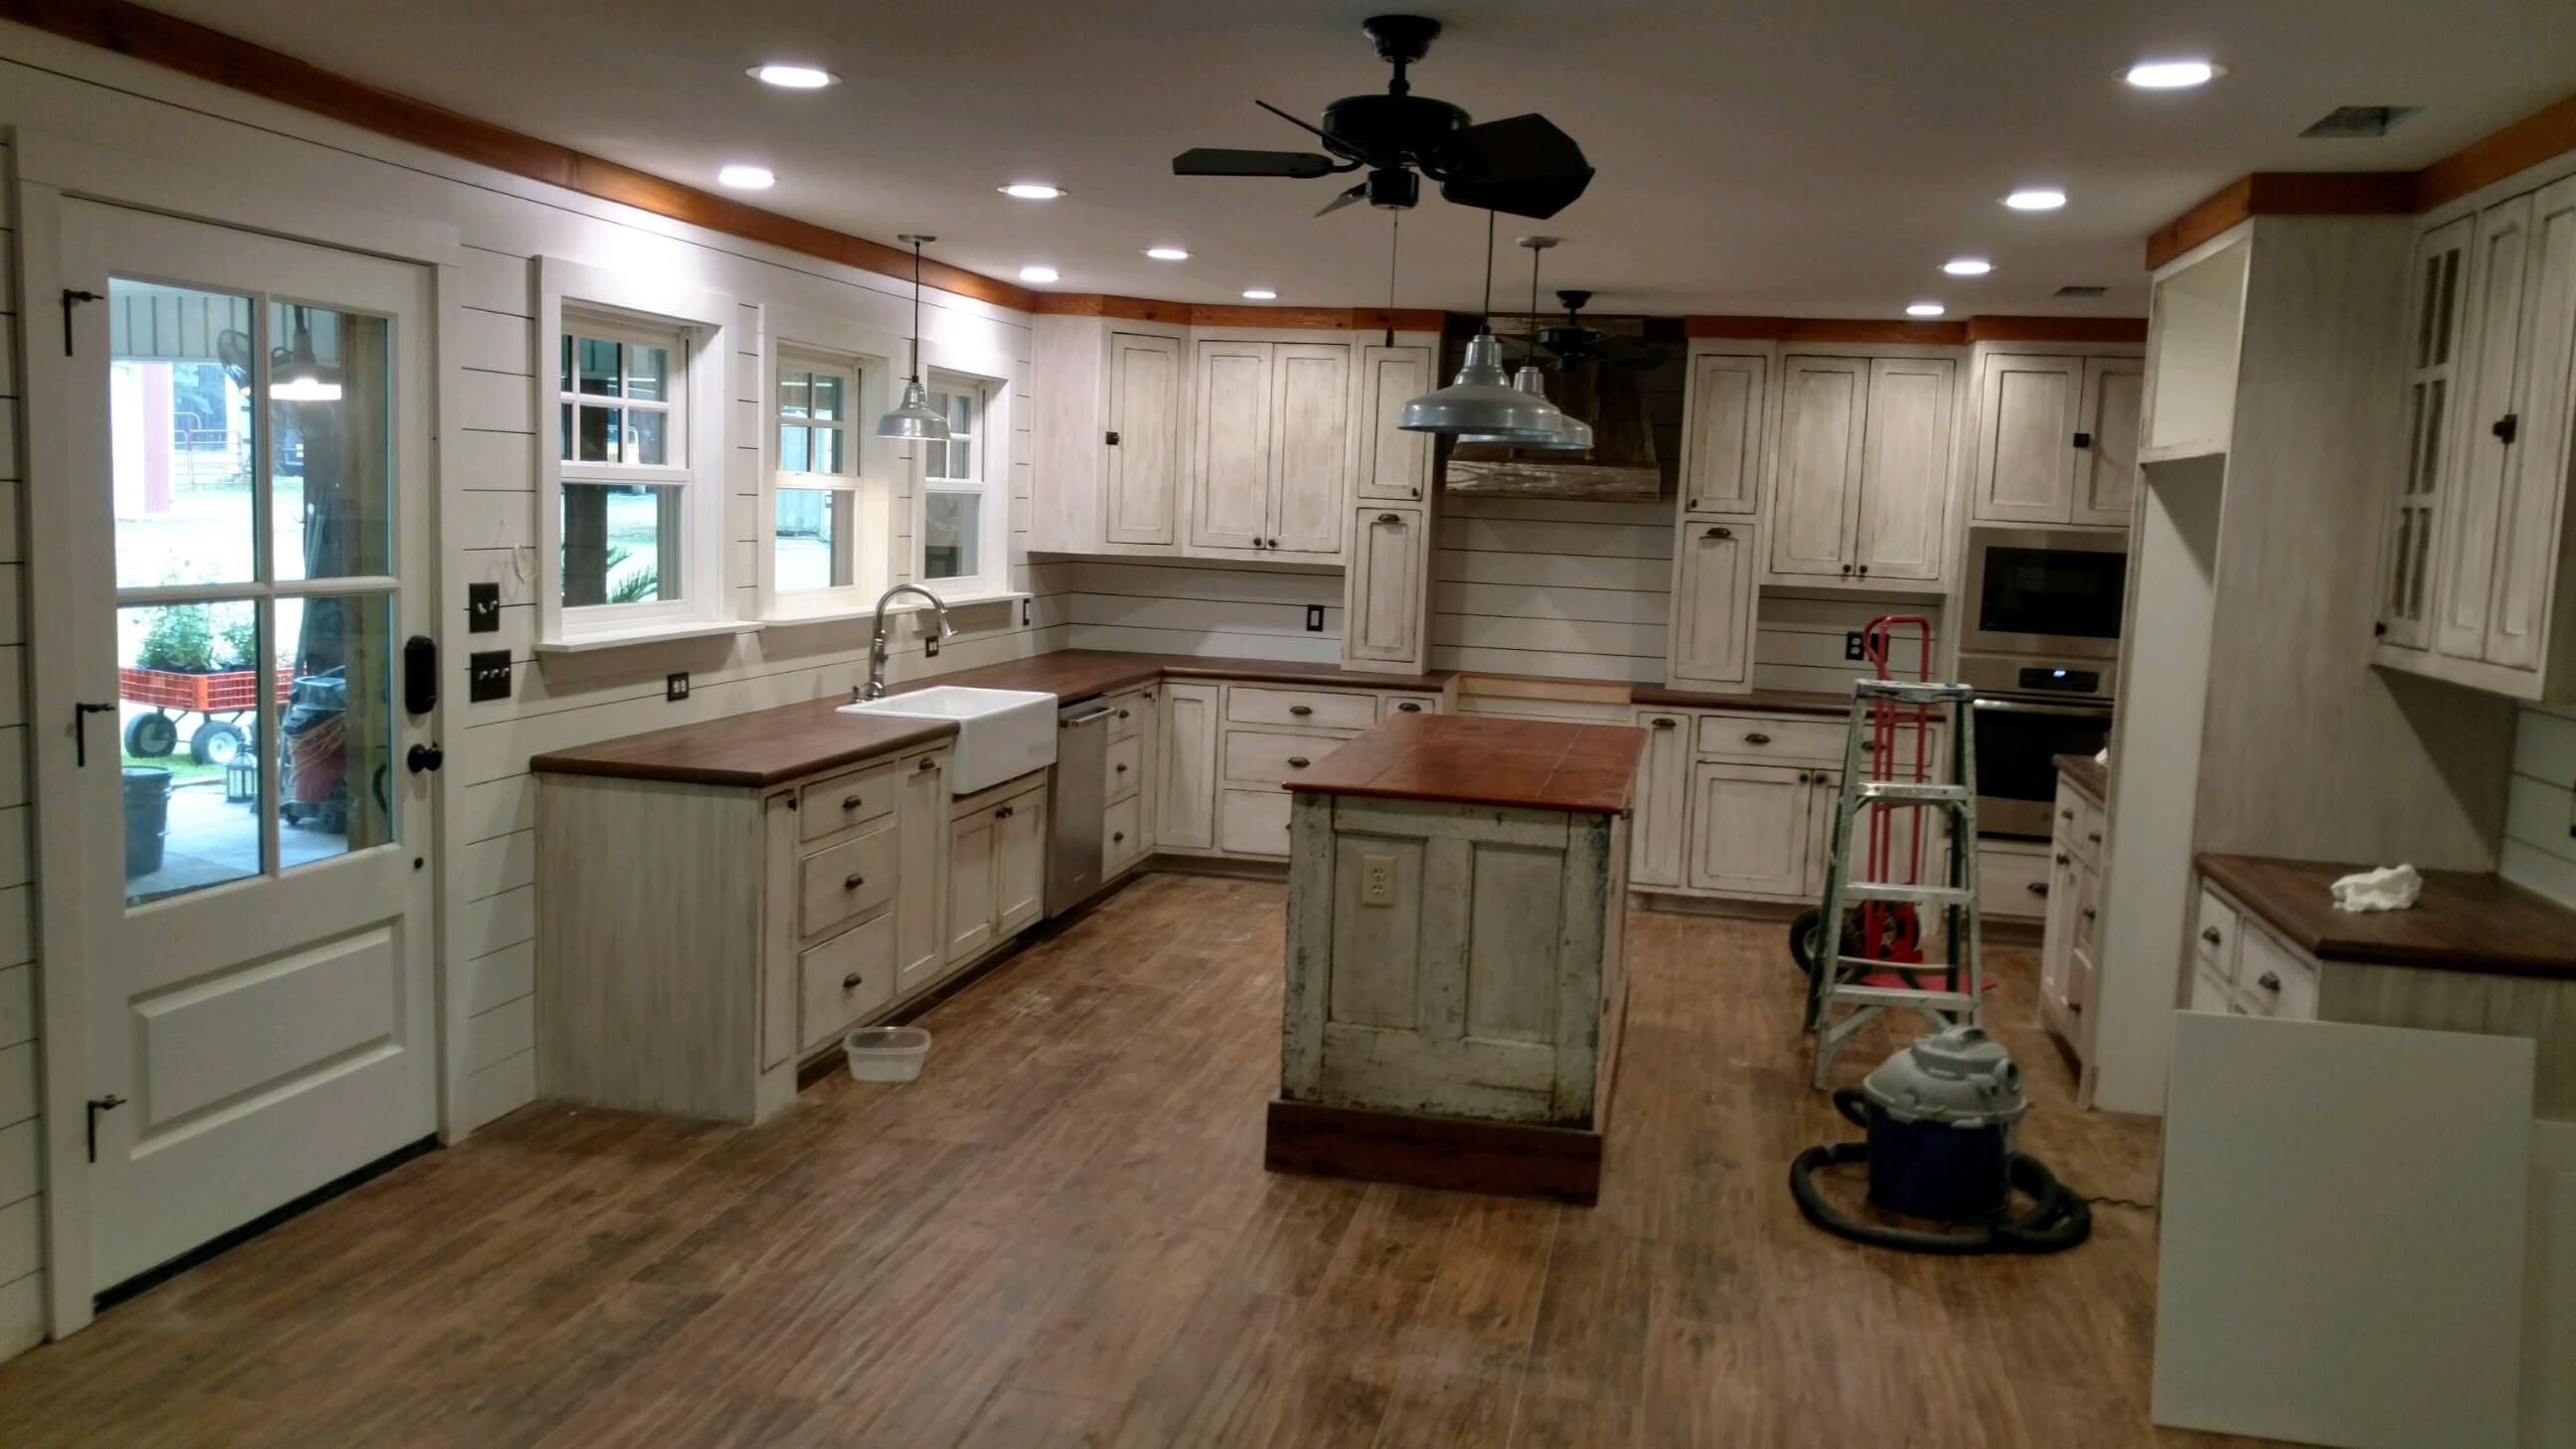 Pin By Kayla Moseley On Interior Painting Kitchen Remodel